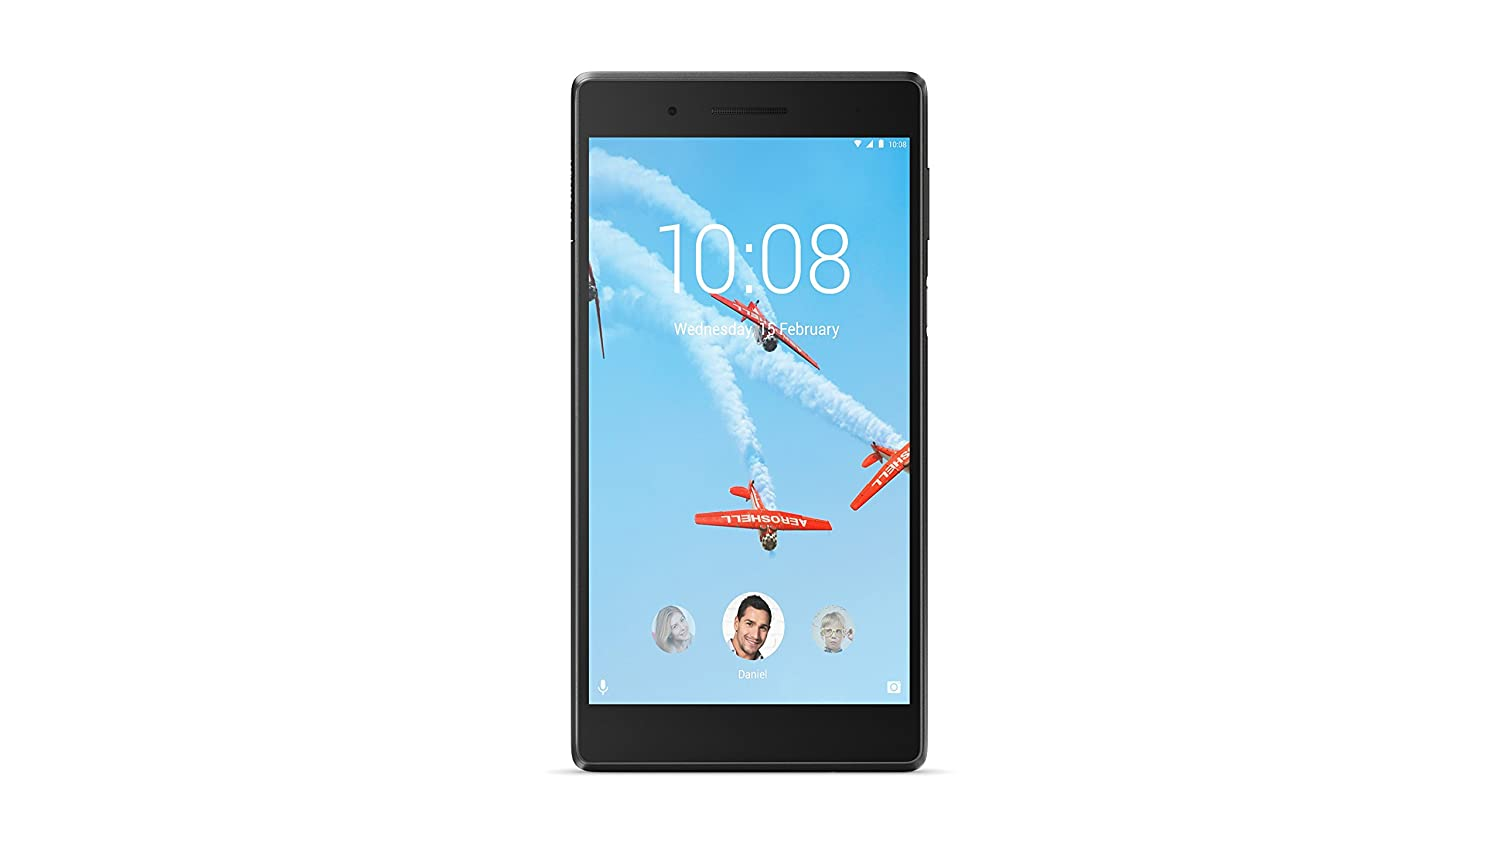 Lenovo Tab 7 Tablet (6 98 inch, 16GB, Wi-Fi + 4G LTE, Voice Calling) Black